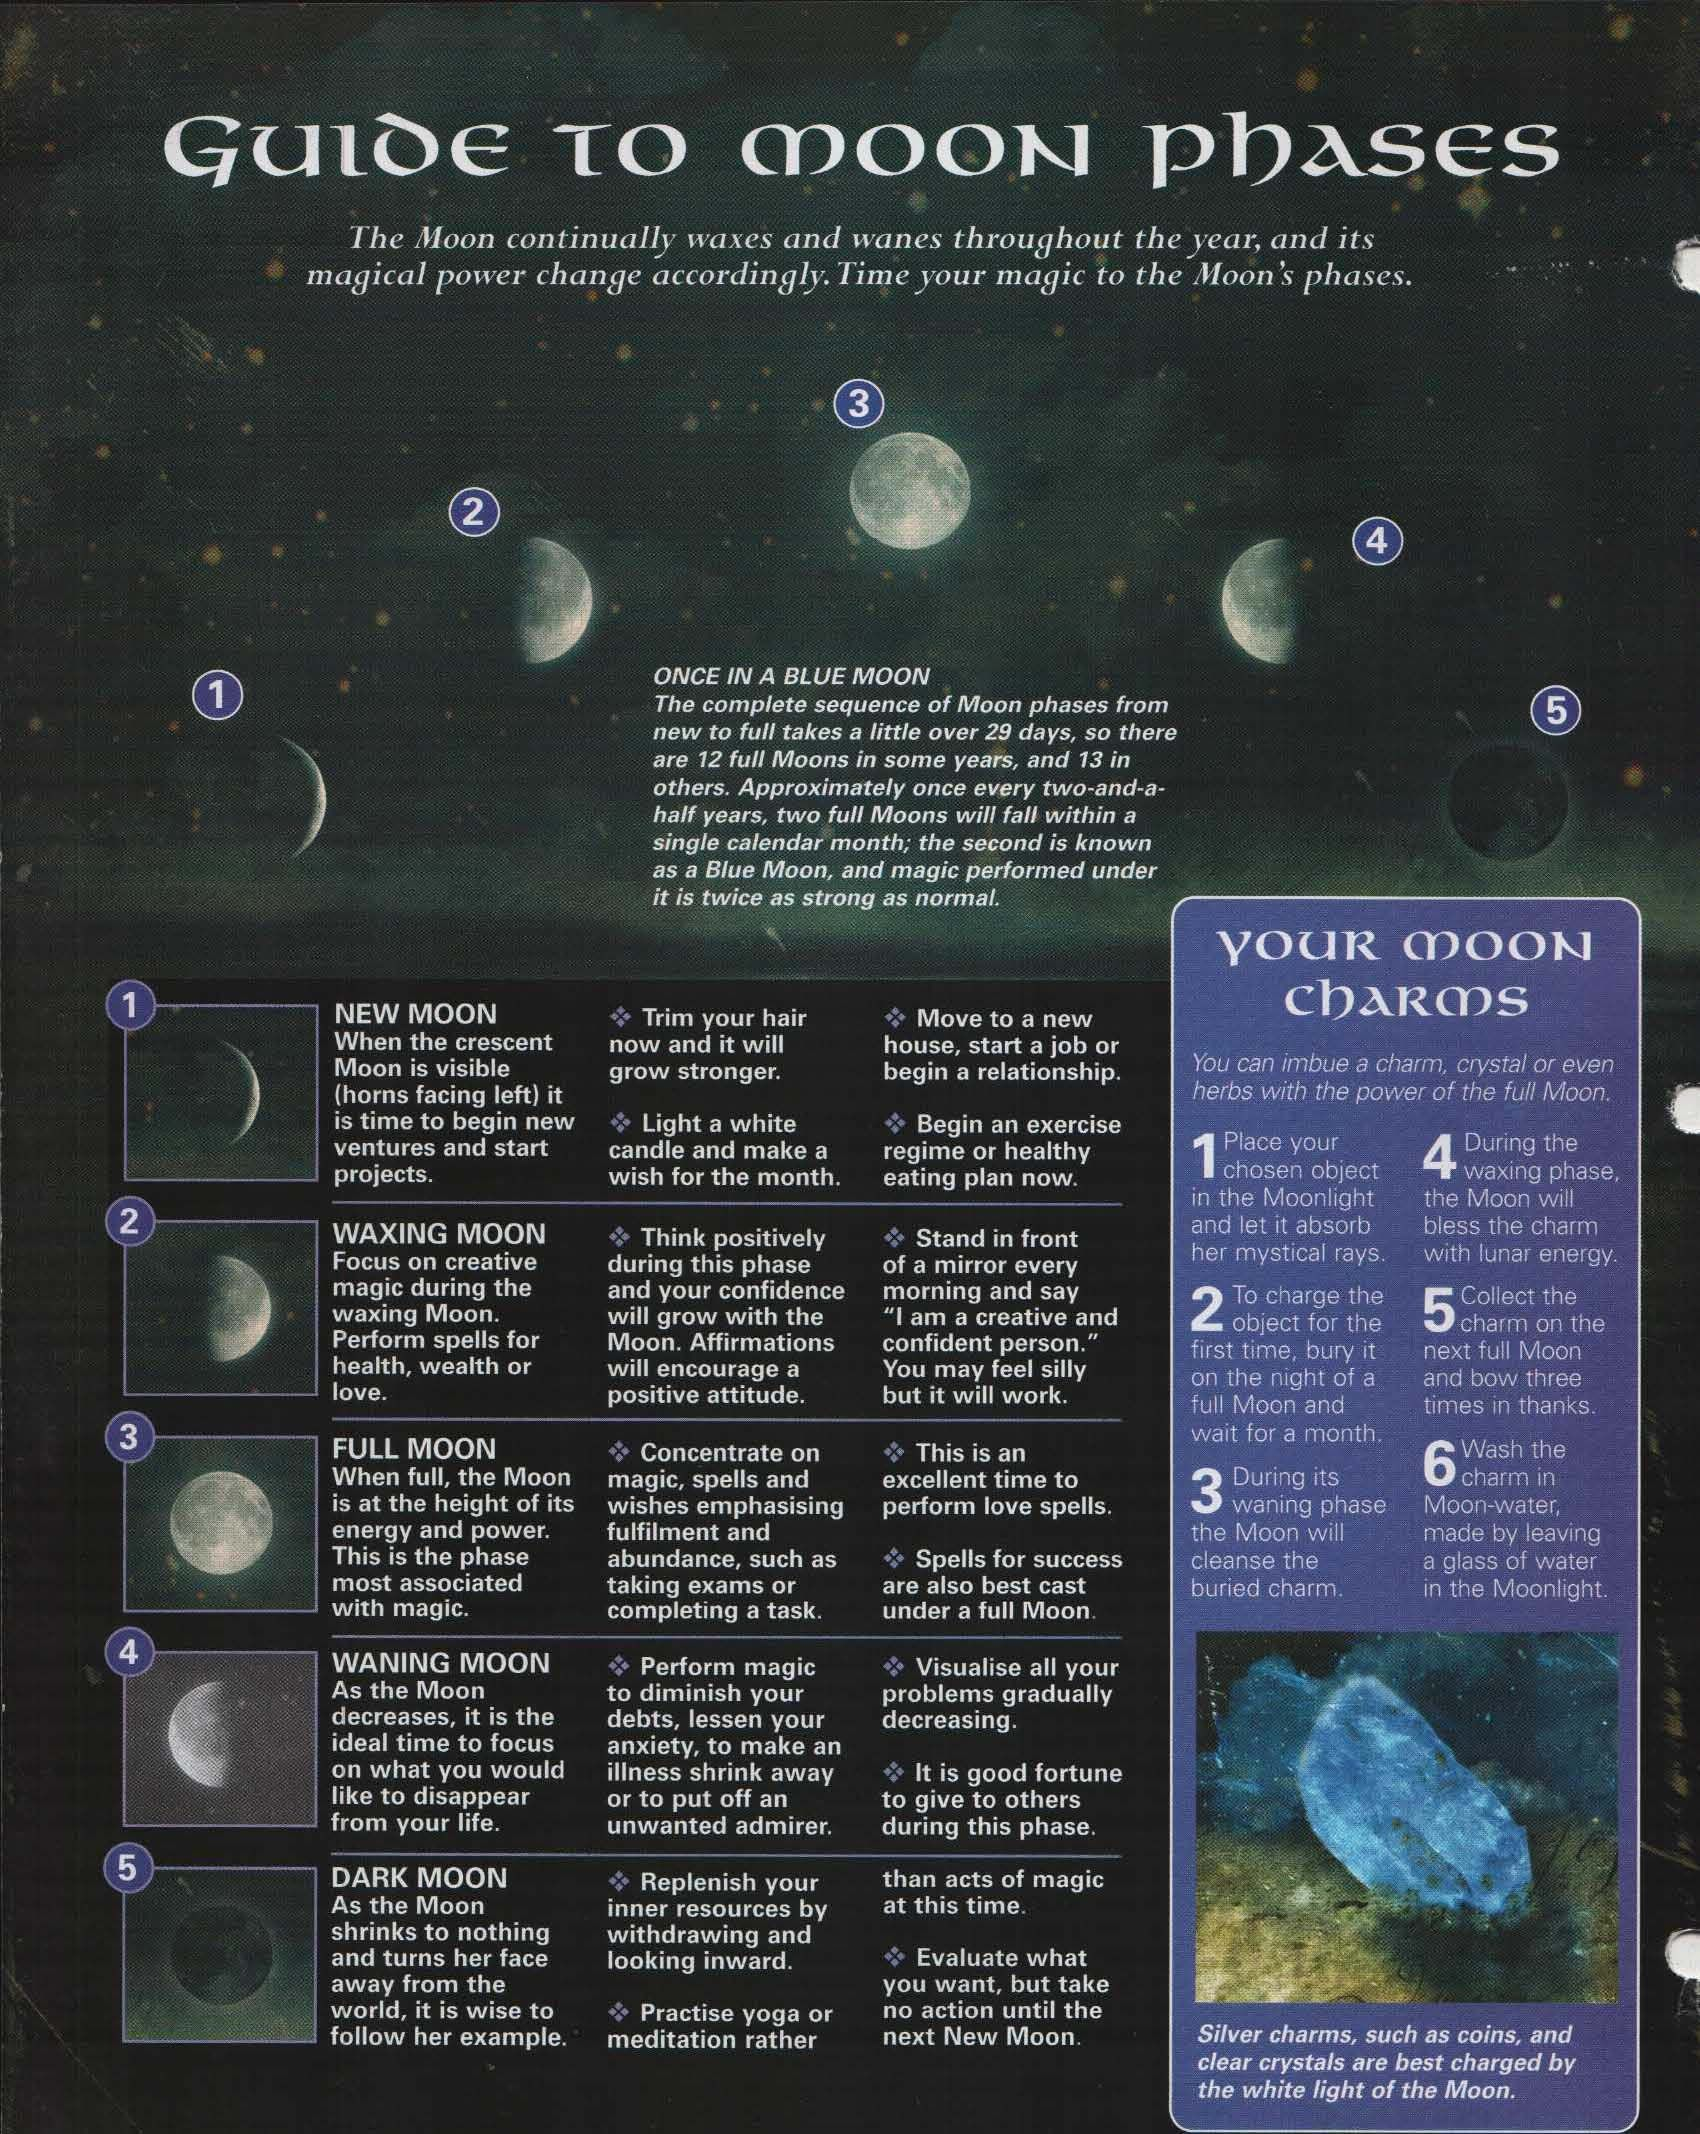 Sweet Little Lunar Cycle Guide And How You Can Maximize The Potential Energy Of Each Moon Phase For Spells Rituals Magic